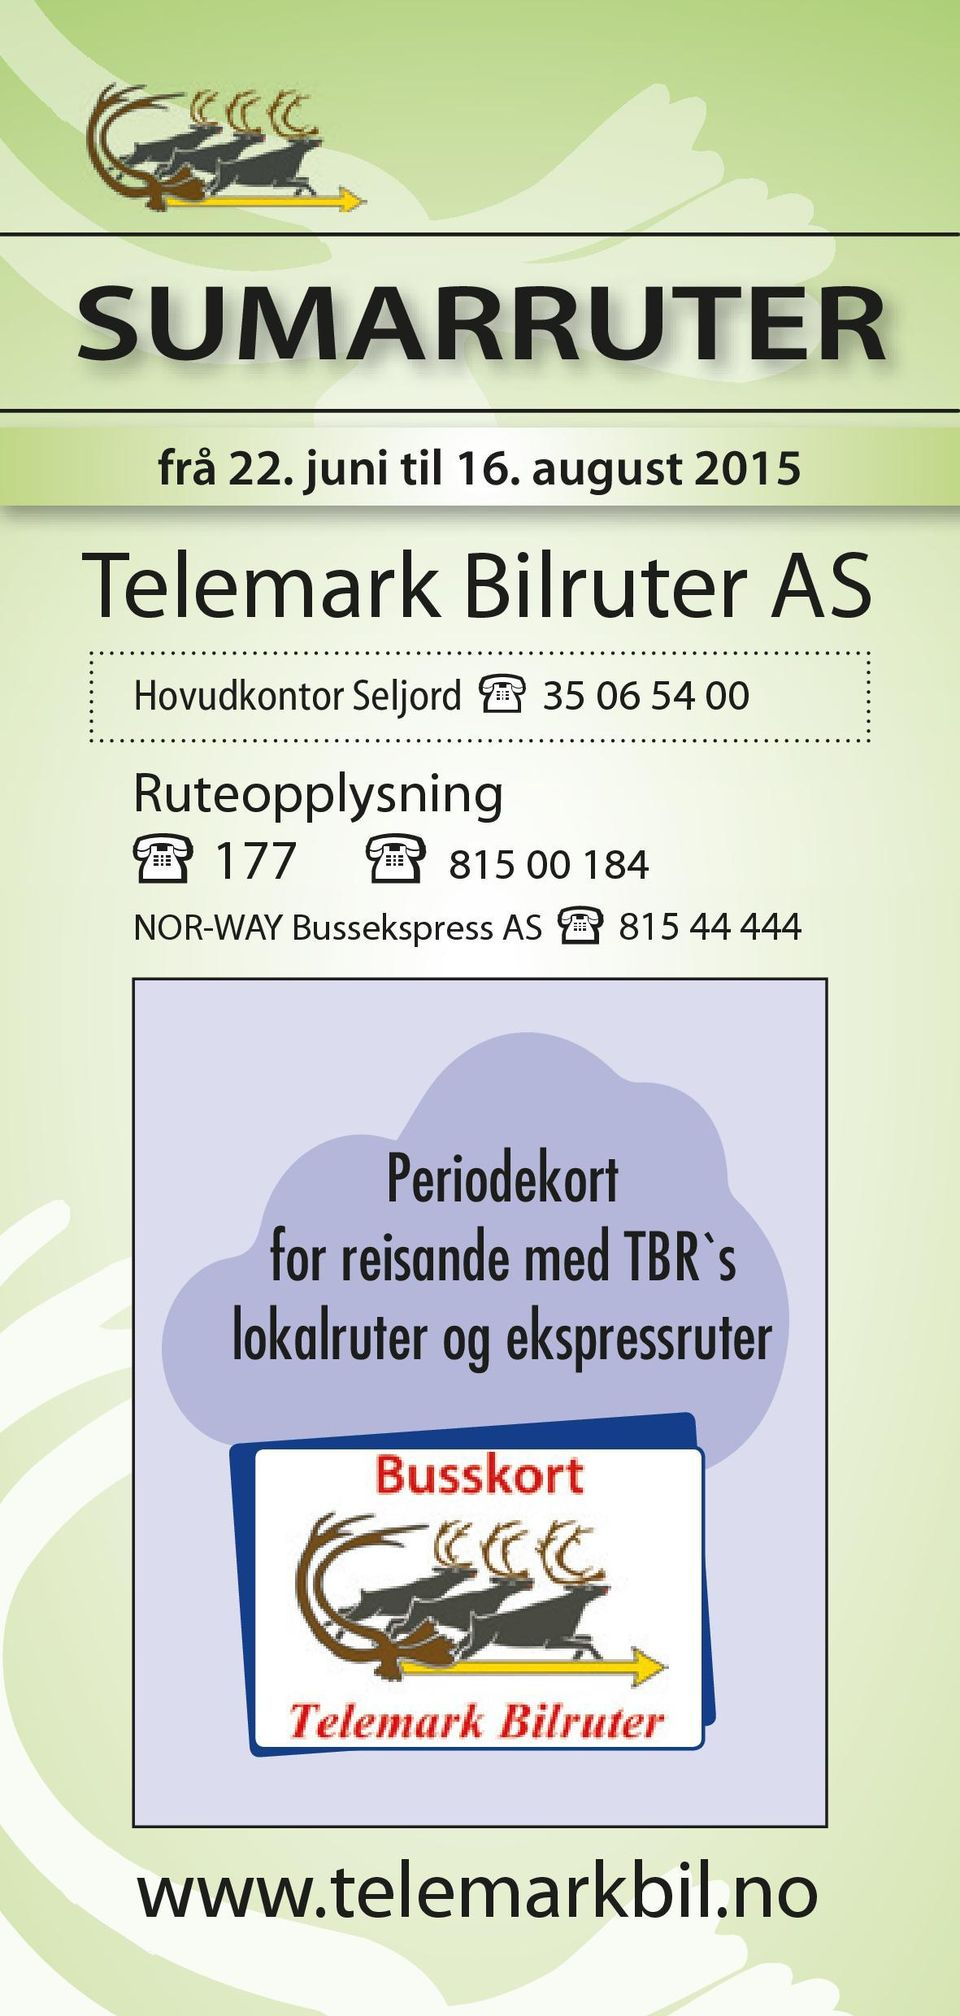 54 00 Ruteopplysning 177 815 00 184 NOR-WAY Bussekspress AS